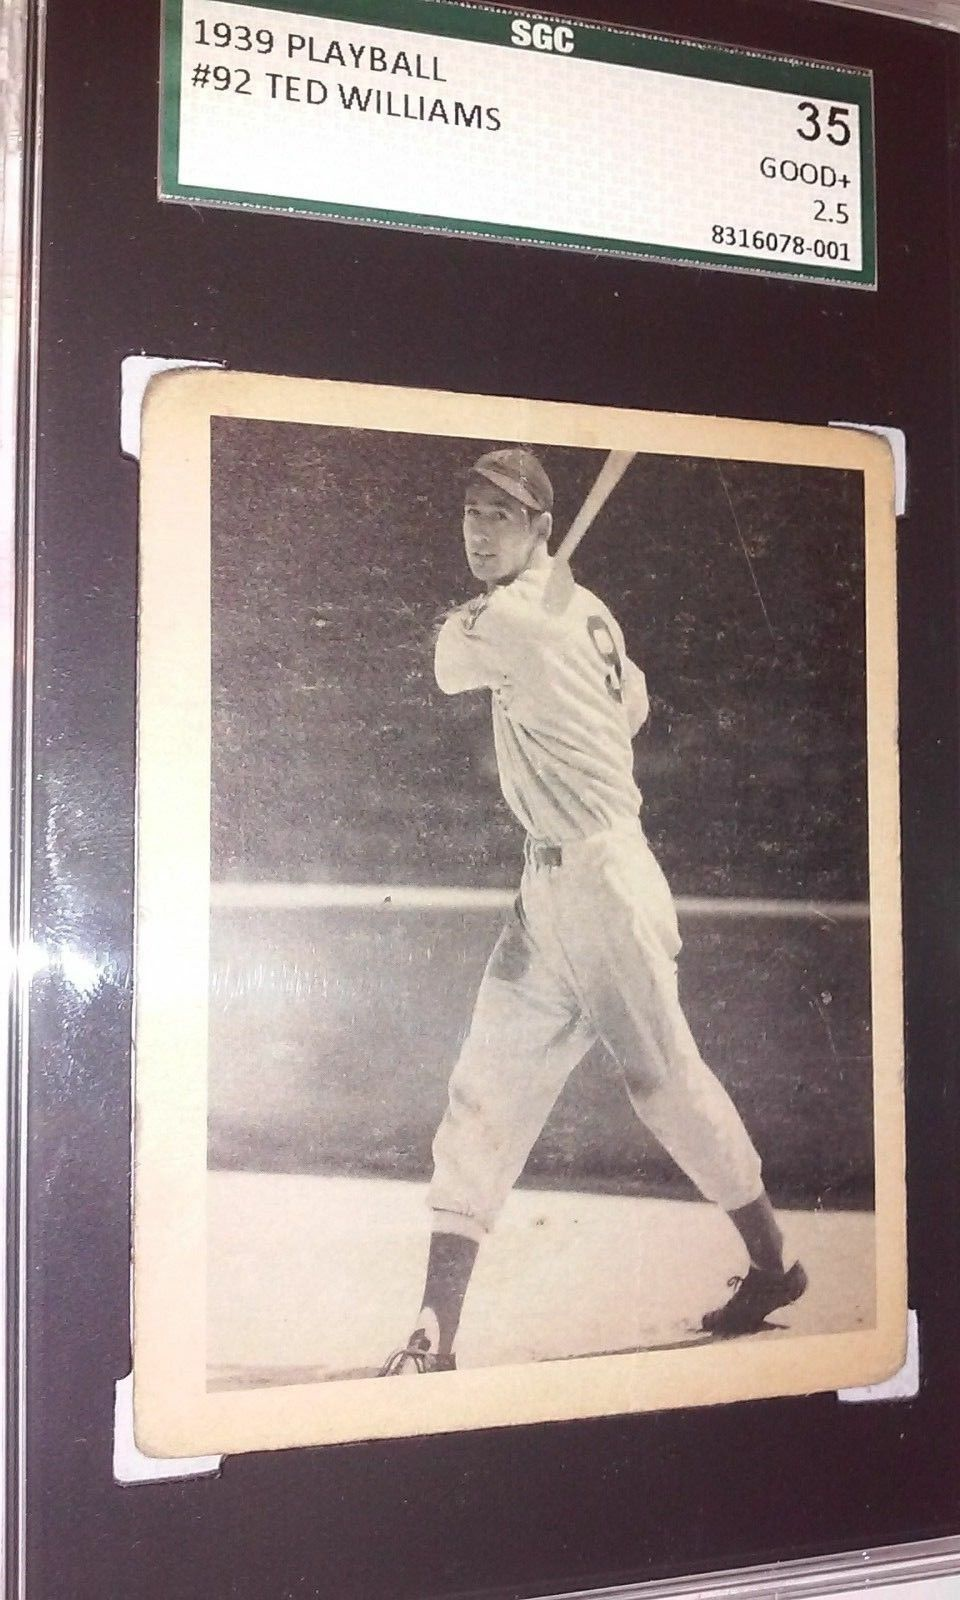 1939 TED WILLIAMS  ROOKIE  SGC 35  25  GOOD PLAYBALL 92